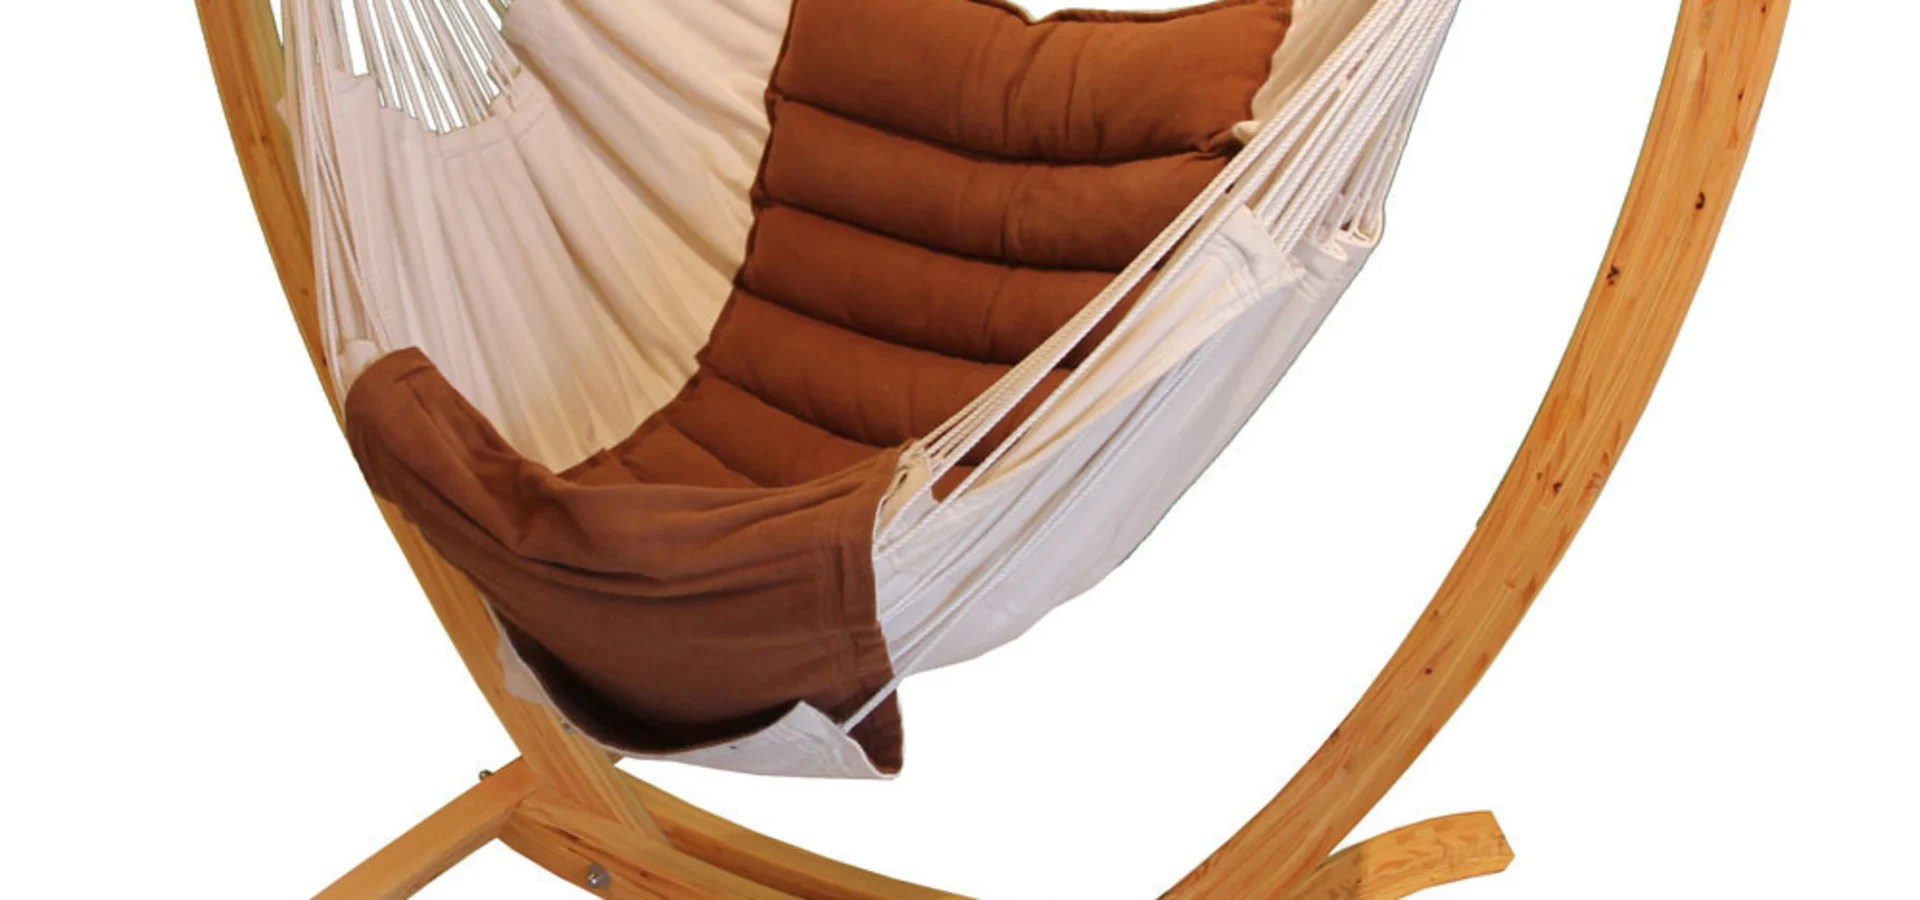 Wooden Arc Hanging Chair Stand By Maranon World Of Hammocks